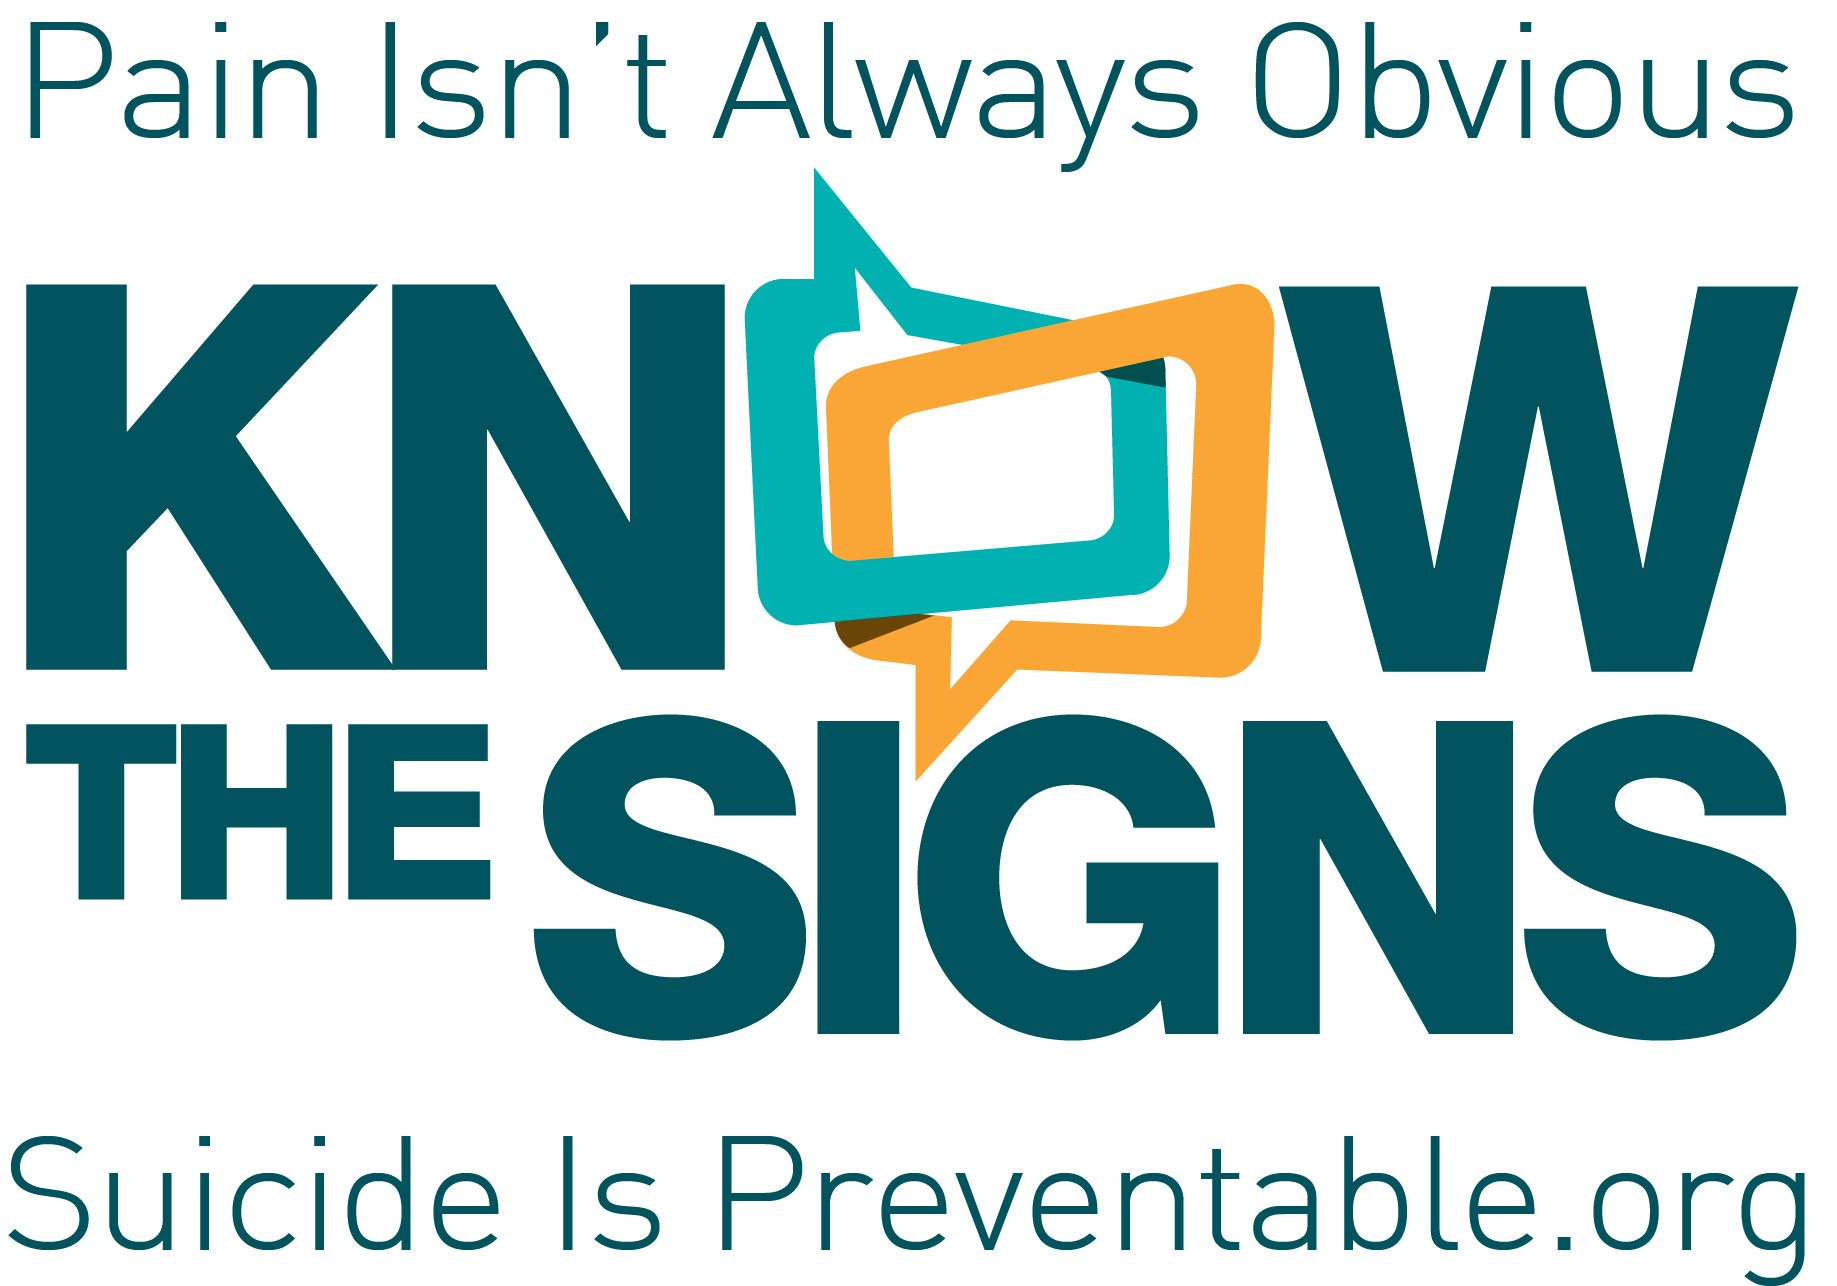 Know the Signs logo. Suicide is preventable.